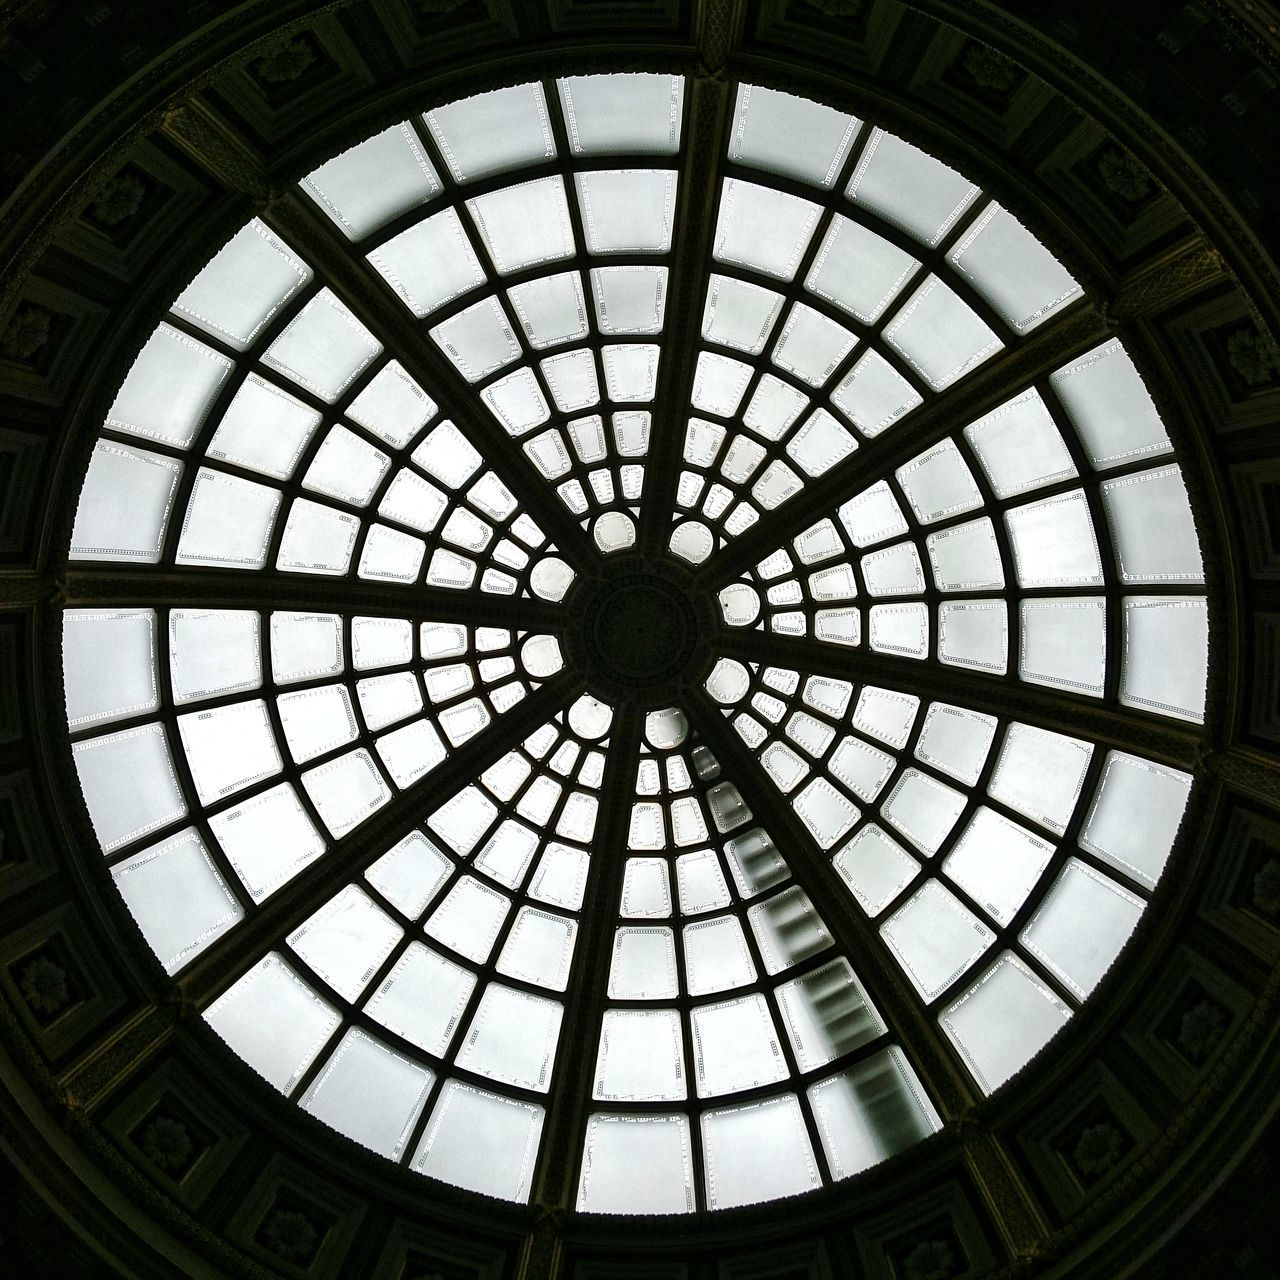 Ceiling Architecture Geometric Shape Circle Skylight Dome Pattern Urban Geometry Great Britain London Historic National Gallery  National Gallery Of Art National Gallery London Ceilingporn Ceiling Lights Window Light Circle Of Light Circleoflife Circle Frame Glass Windows Glass Art Glass London Lifestyle